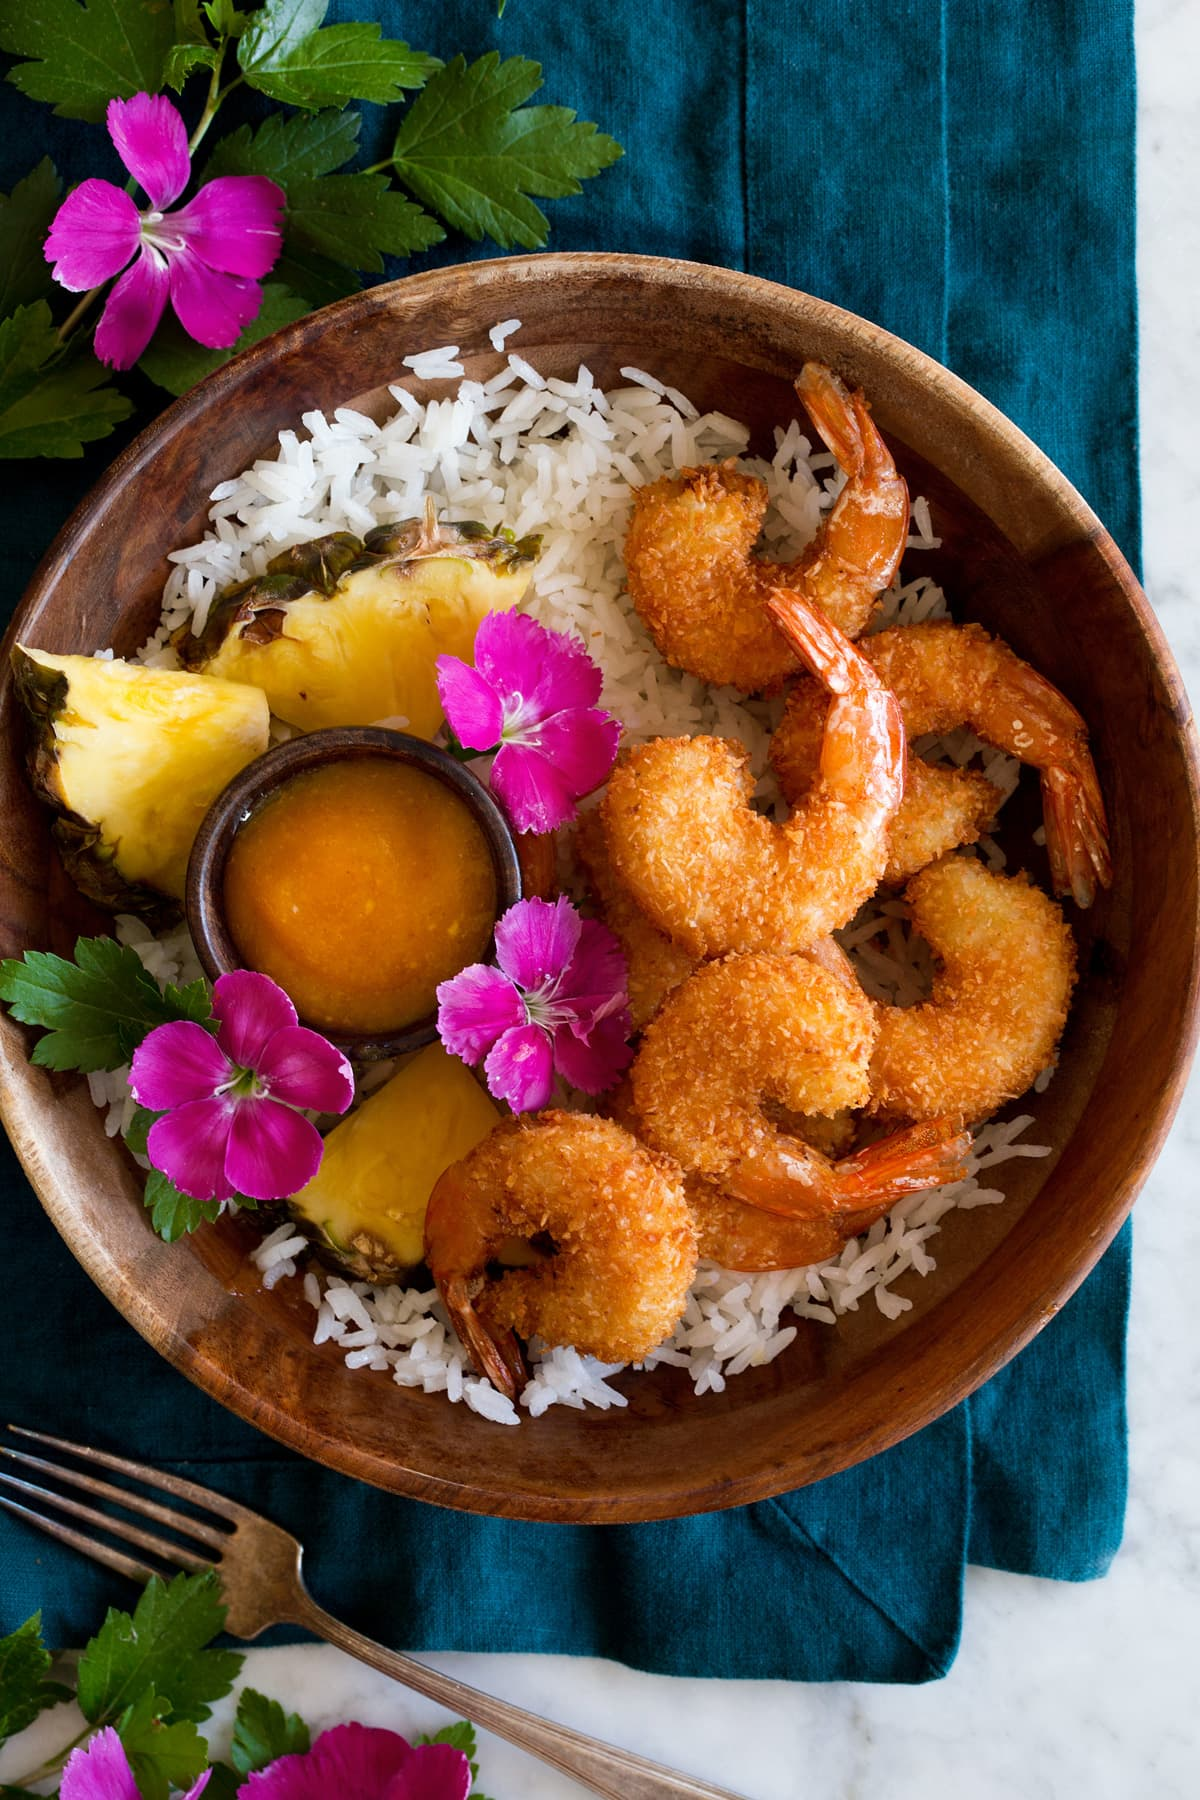 Photo: Coconut shrimp in a wooden bowl over coconut rice. It is served with a side of pineapple and bright pink flowers to the side.